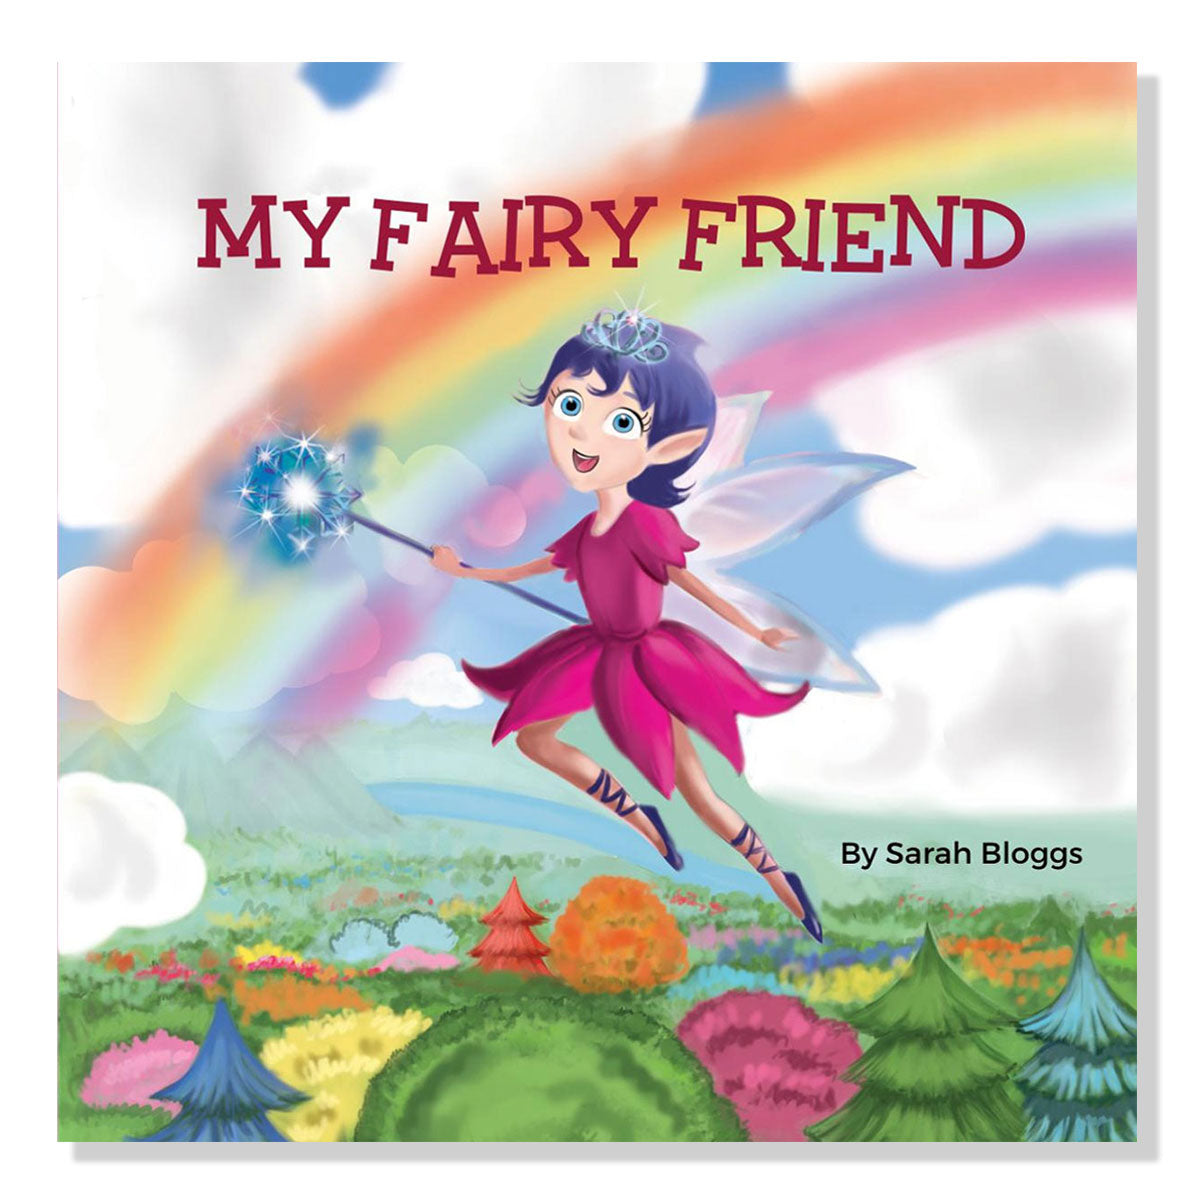 My Fairy Friend